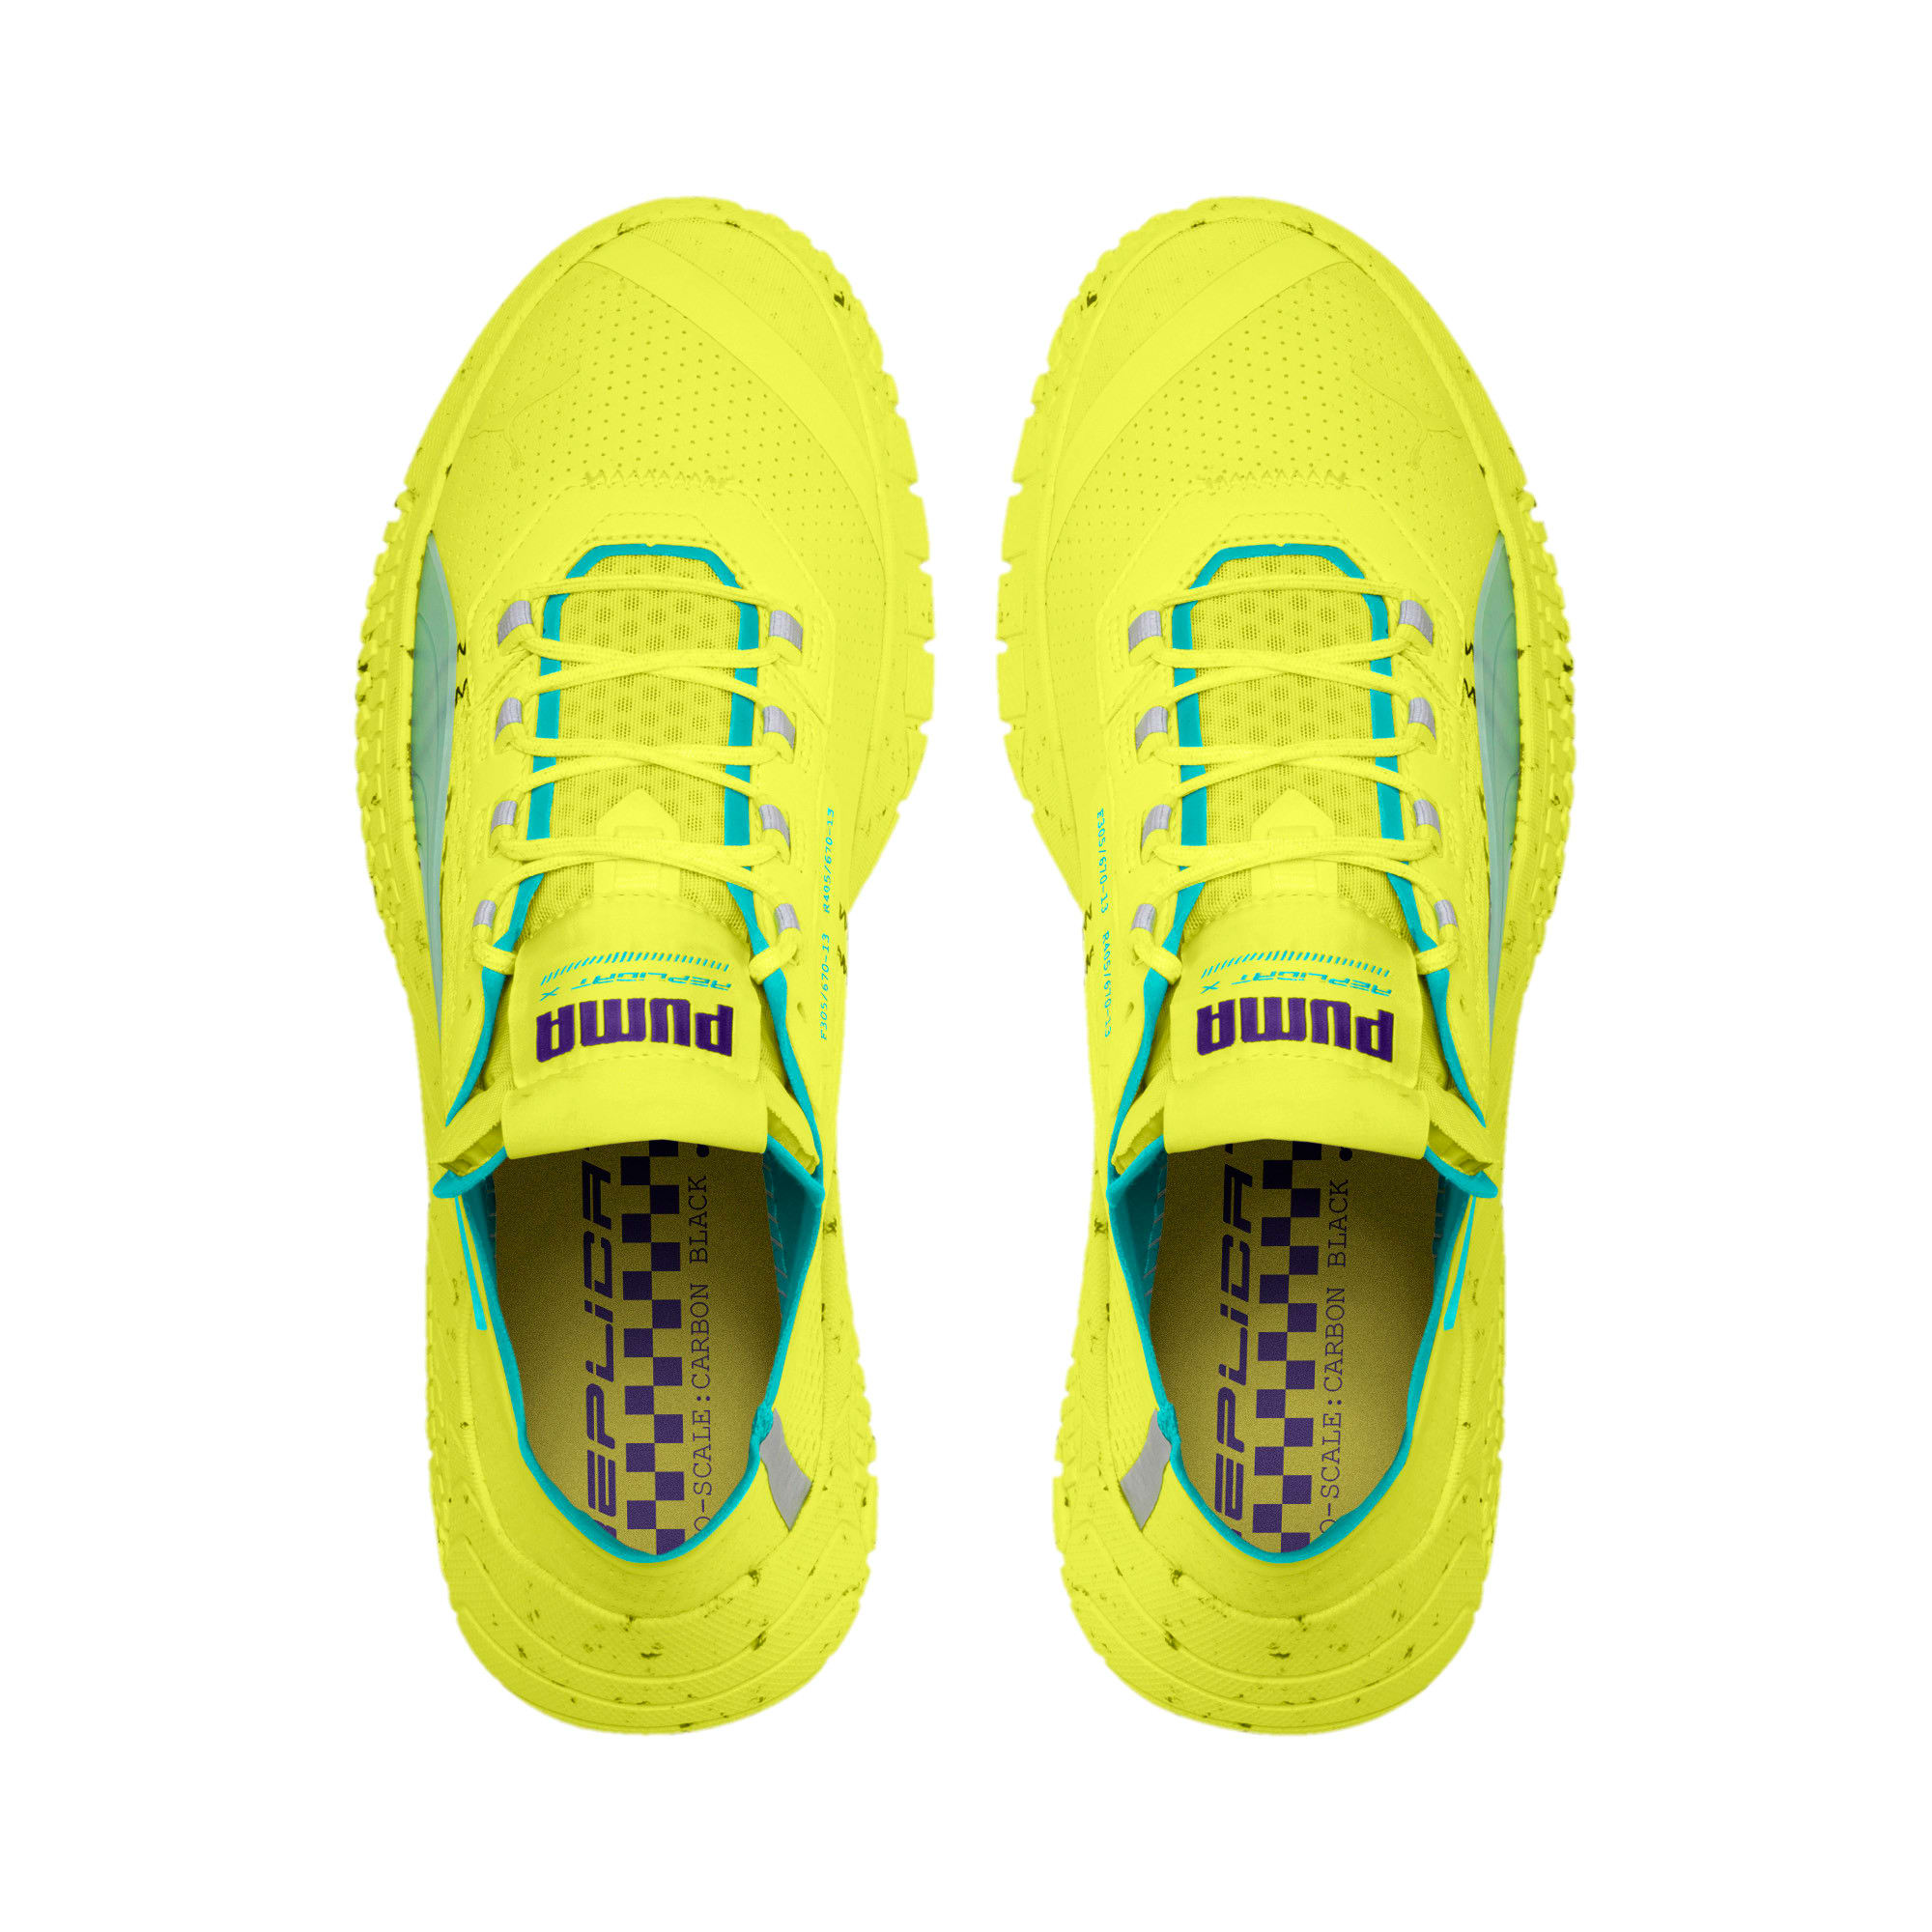 Thumbnail 6 of Replicat-X Fluro Trainers, Fzy Ylw-Blu Trqse-Prpl Glmr, medium